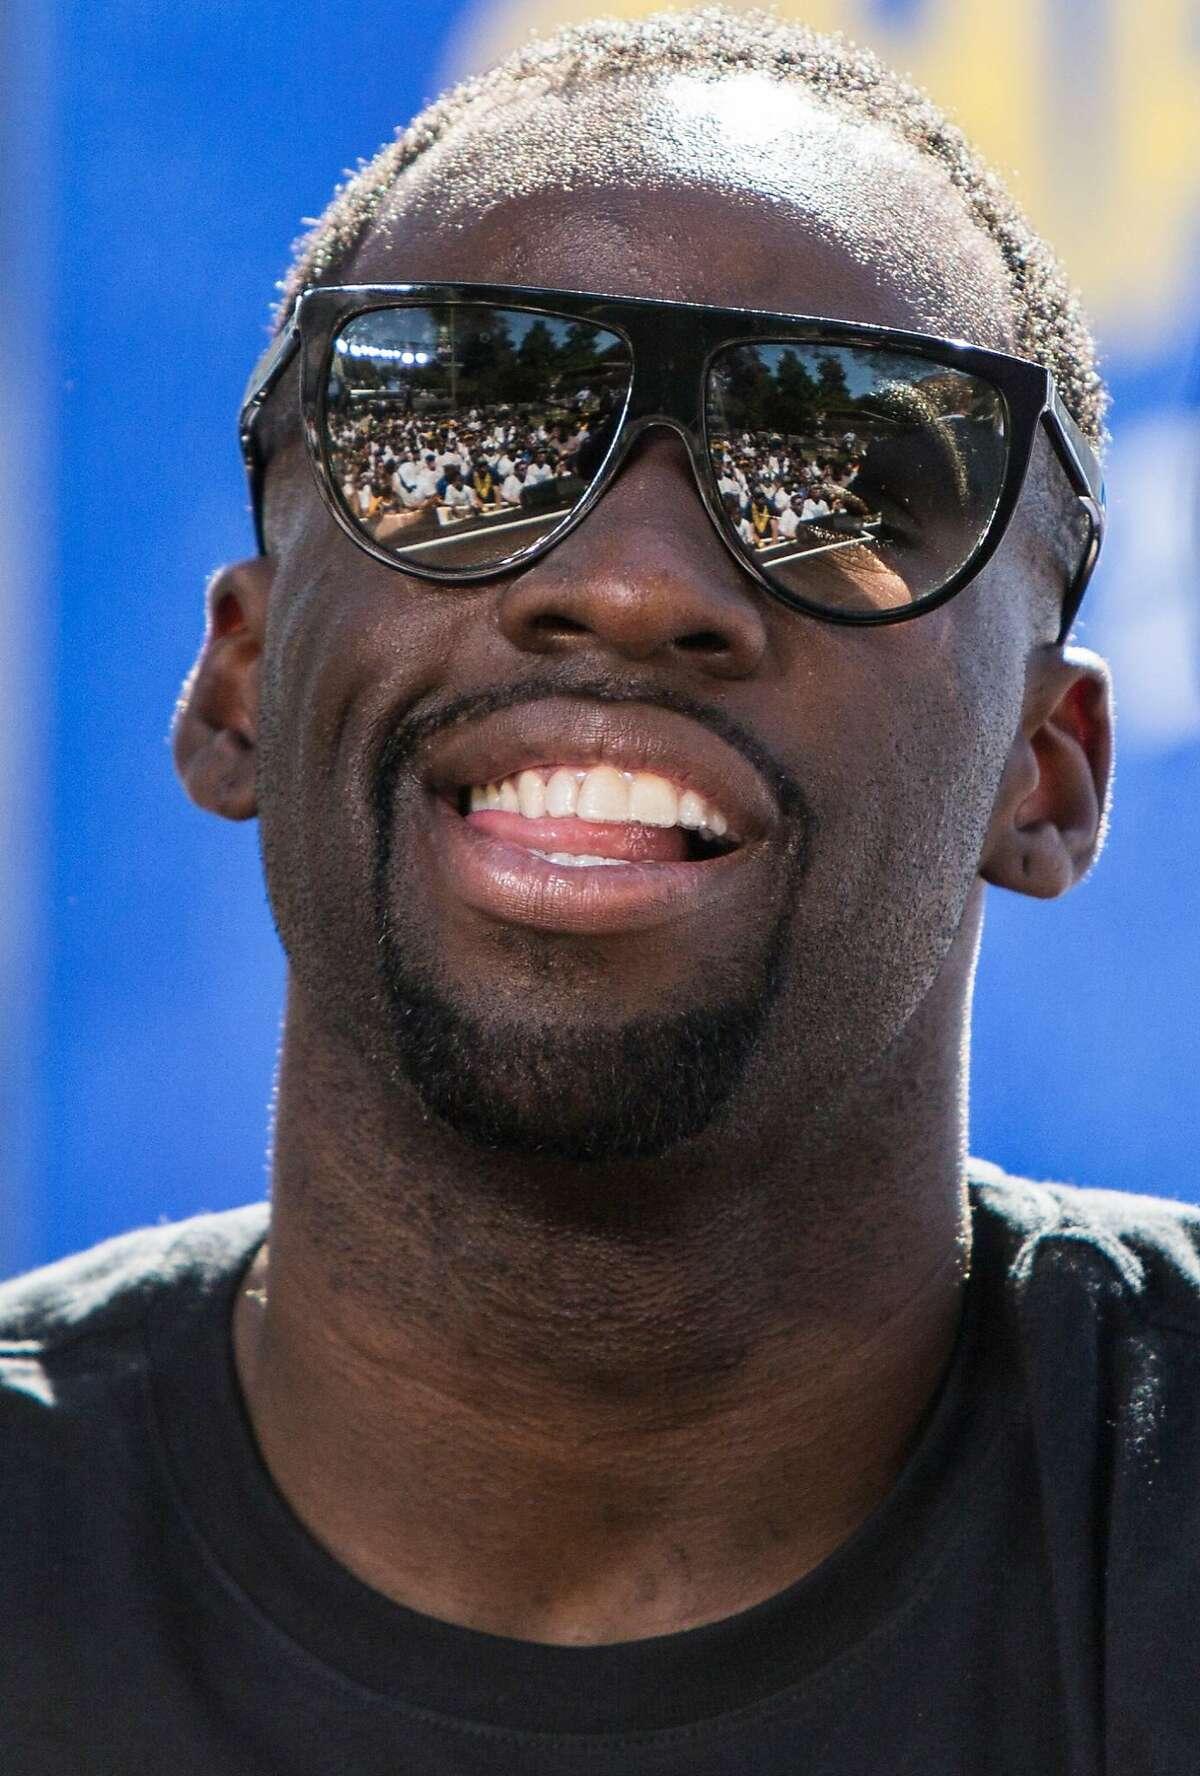 Warriors' Draymond Green flashes his pearly whites at the crowd during an NBC Bay Area Sports question and answer session with the team and coaches before the start of the Golden State Warriors NBA Finals victory parade in downtown Oakland, Calif. Tuesday, June 12, 2018.